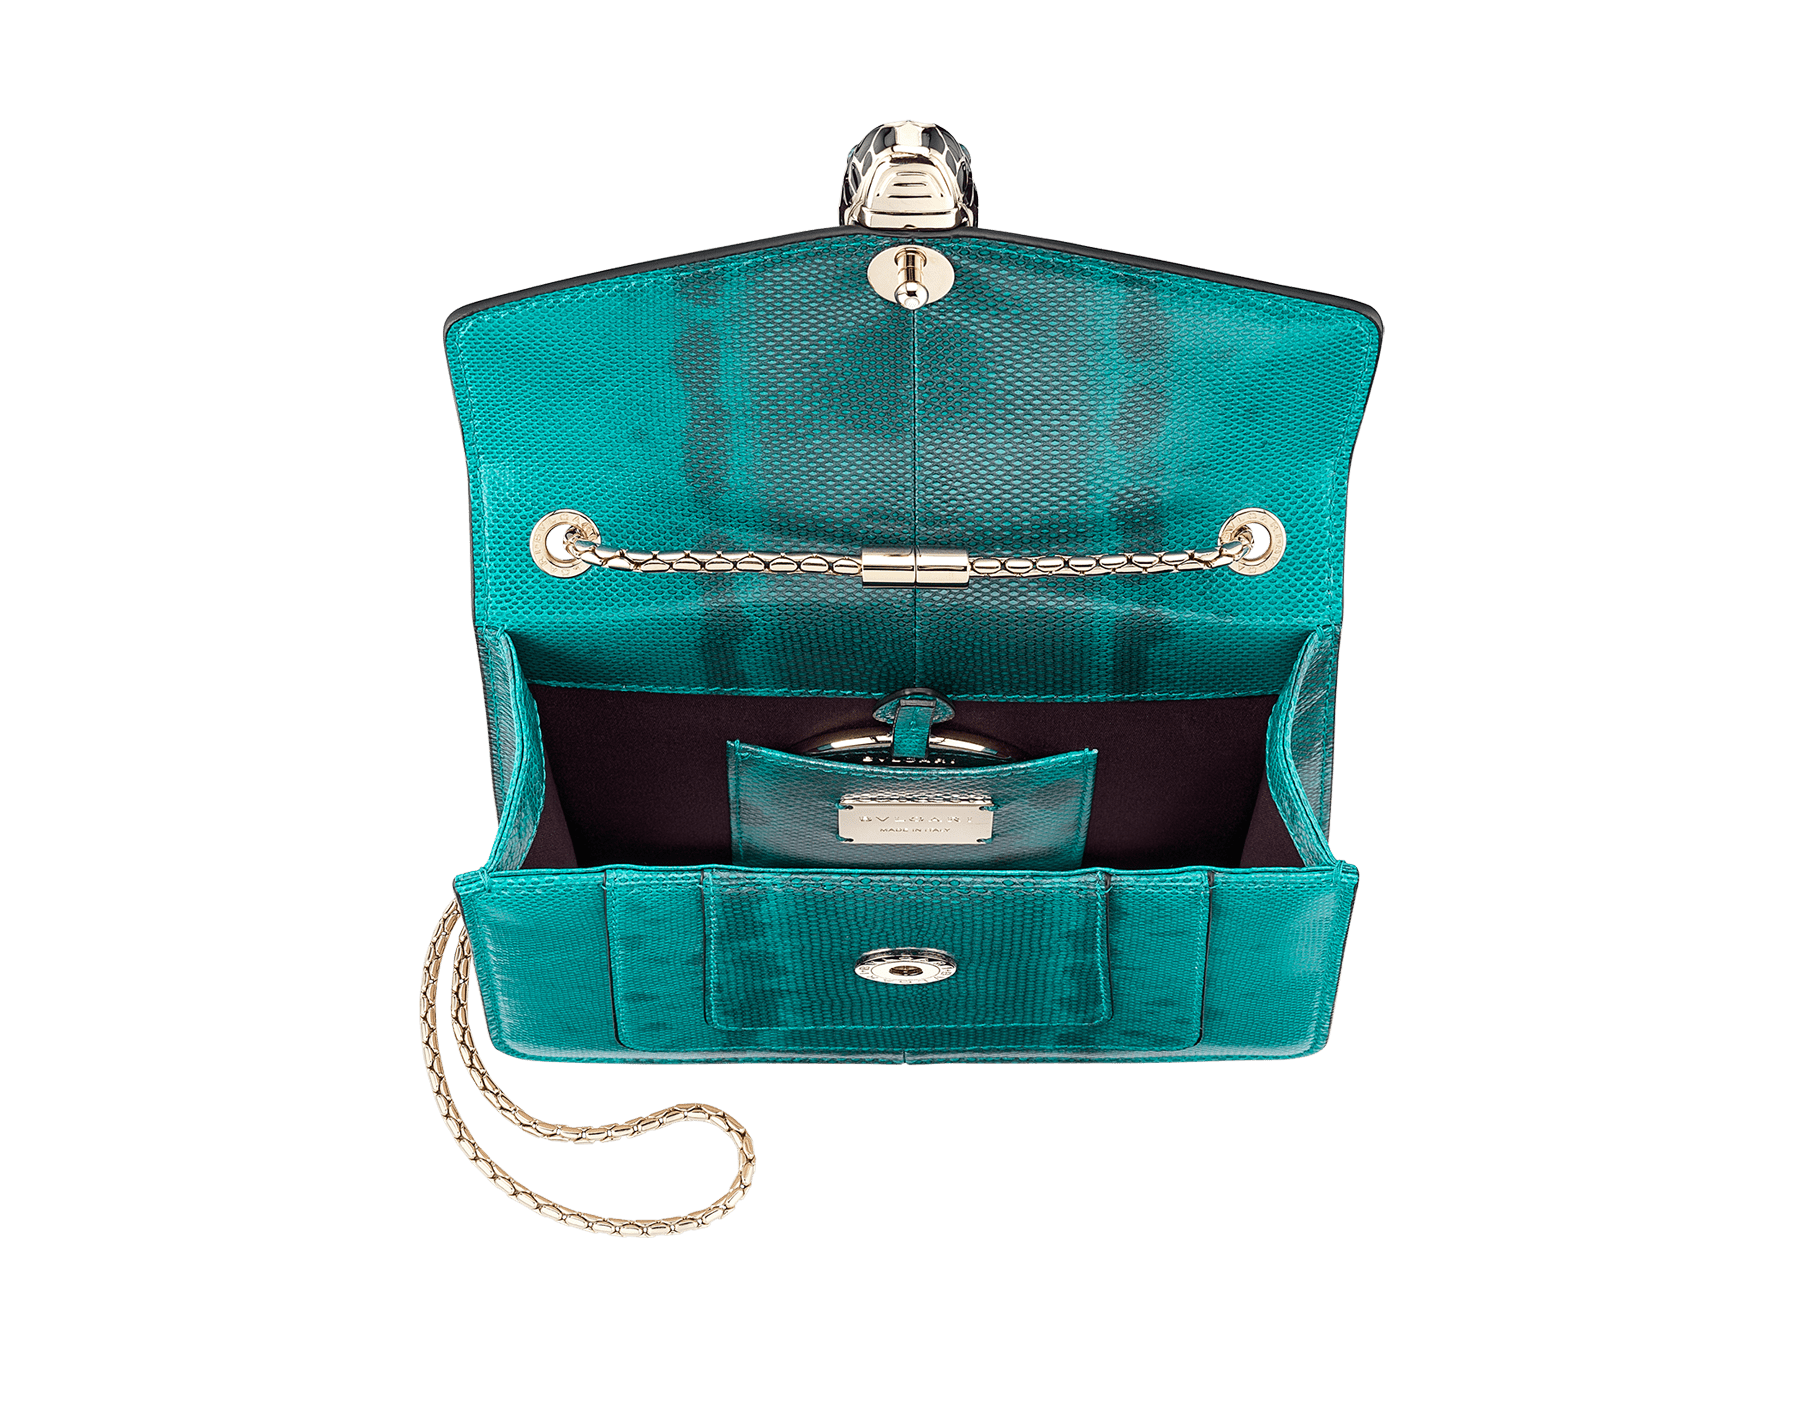 Serpenti Forever crossbody bag in tropical turquoise shiny karung skin. Snakehead closure in light gold plated brass decorated with black and white enamel, and green malachite eyes. 287912 image 4